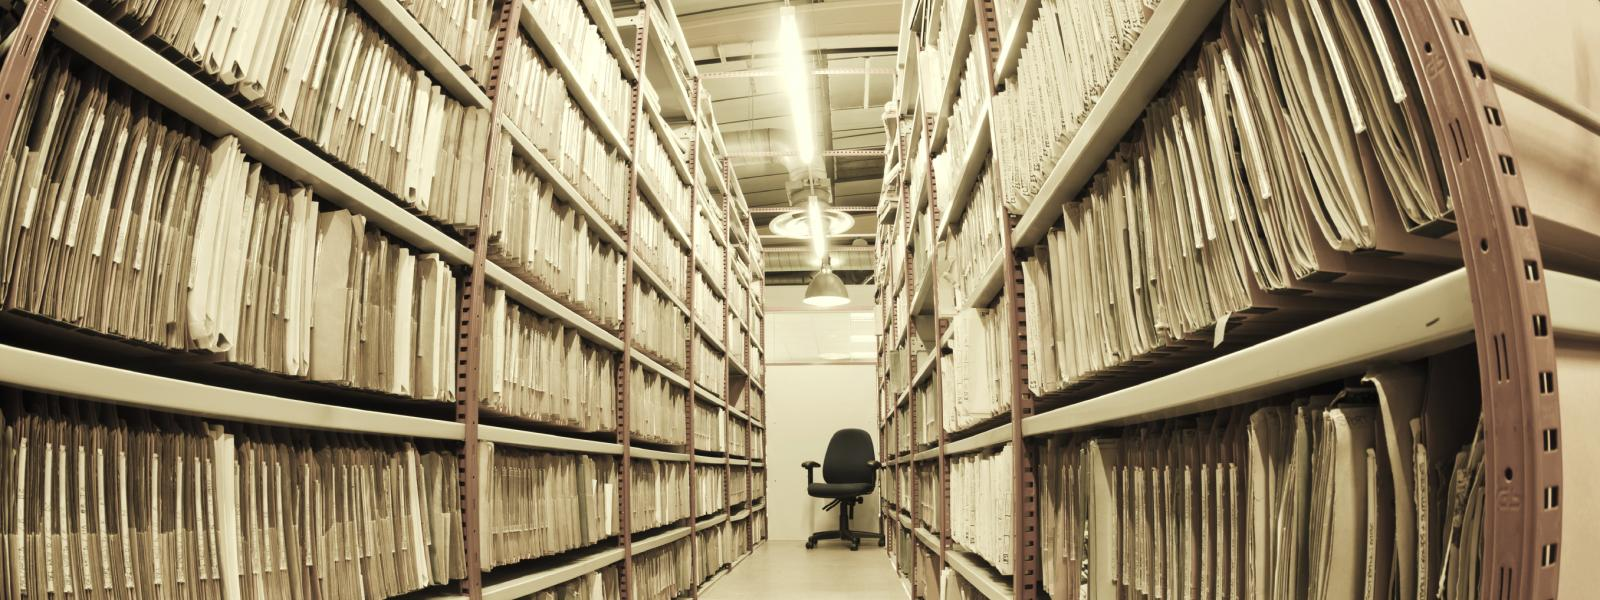 Files in an archive